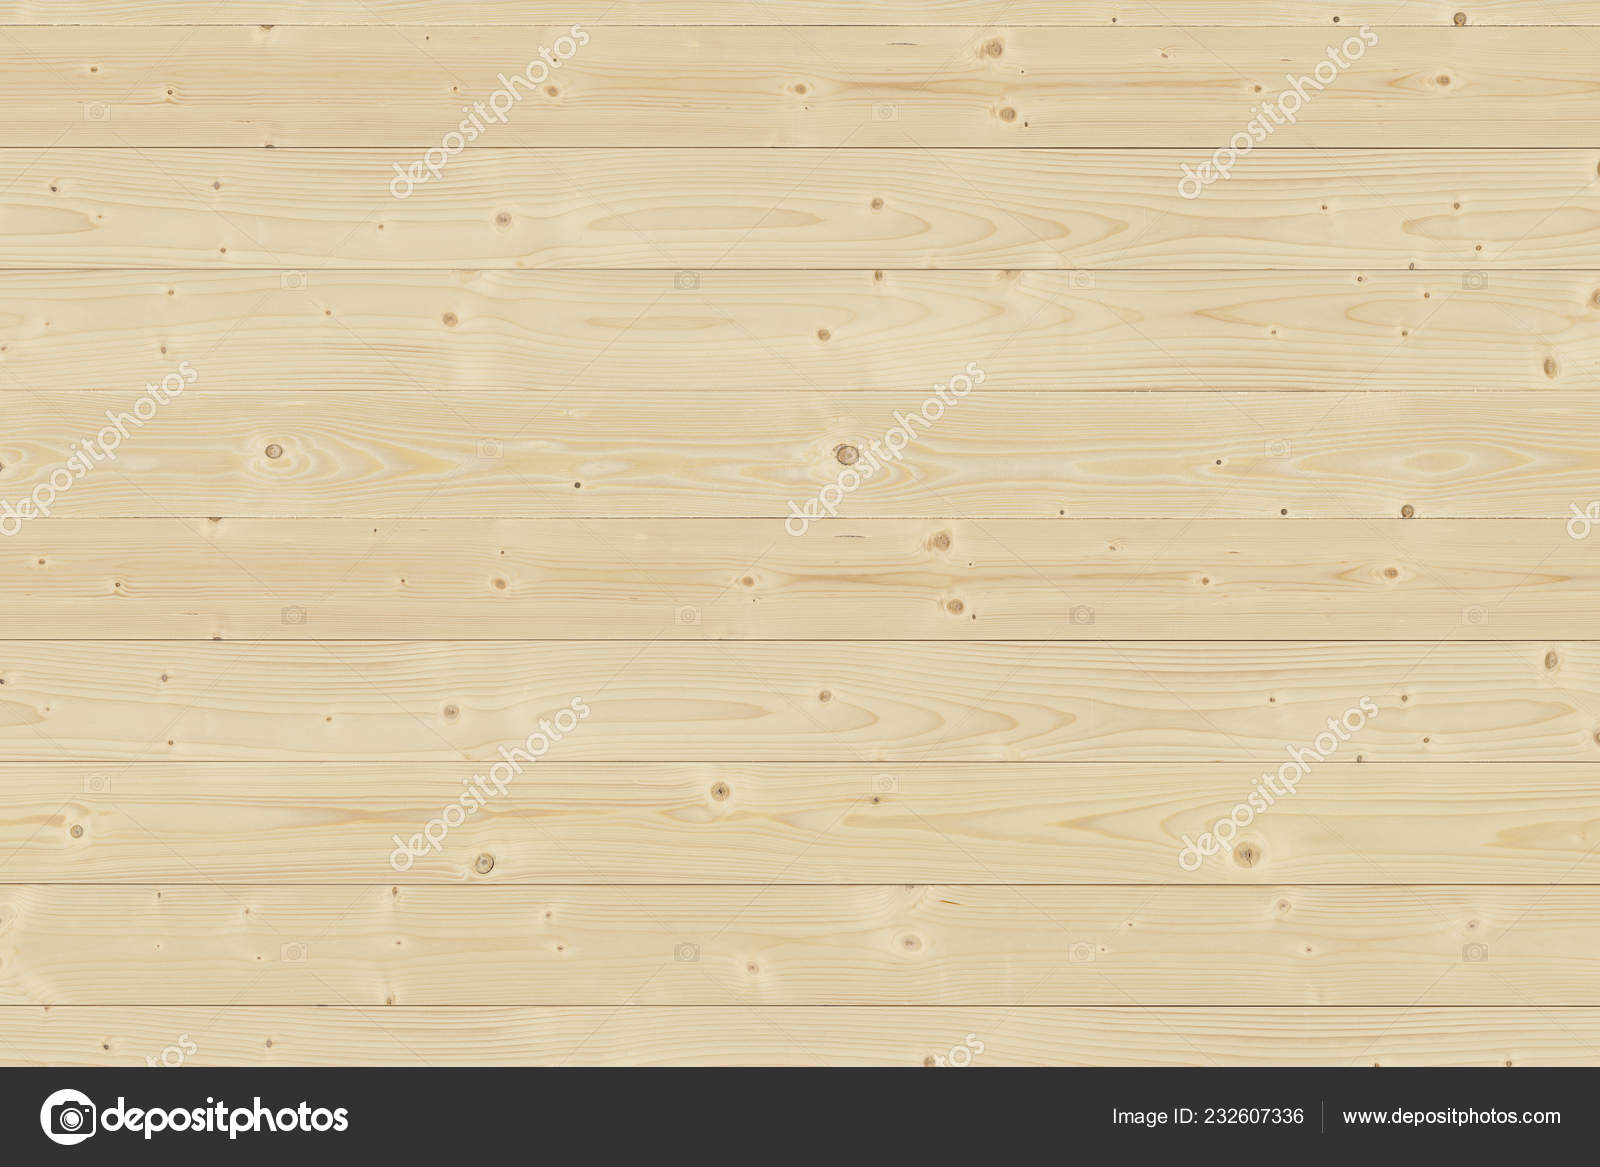 Pine Tree Timber Wood Wallpaper Surface Texture Background